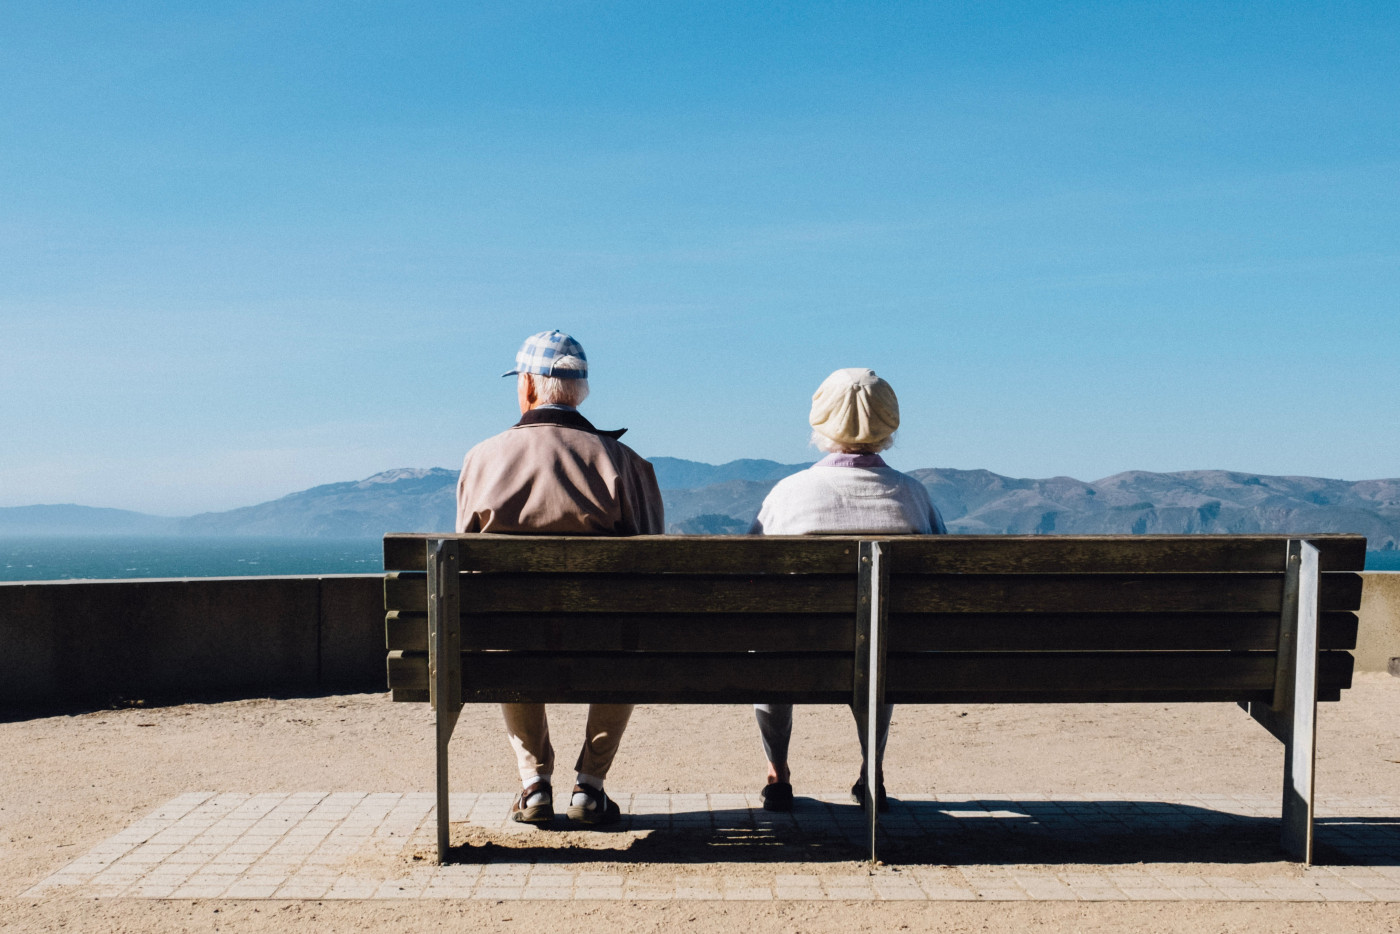 safety concerns with older patients